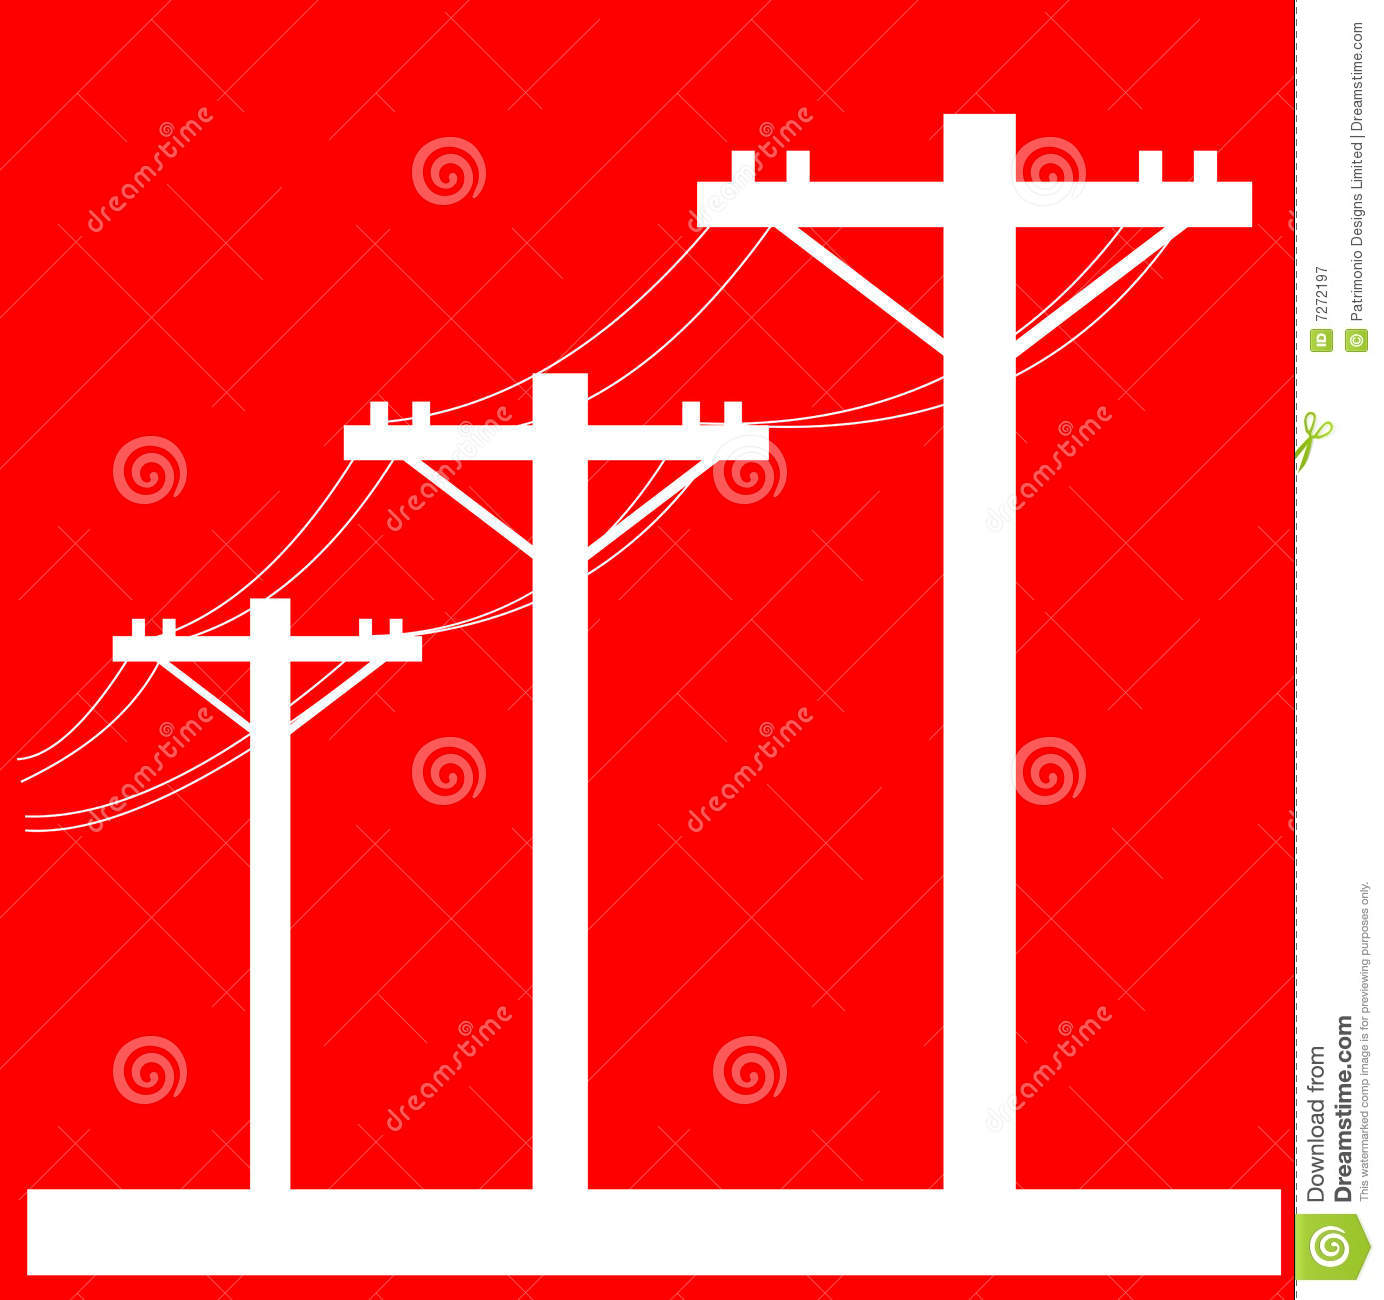 Electric power line post stock illustration illustration of post electric power line post biocorpaavc